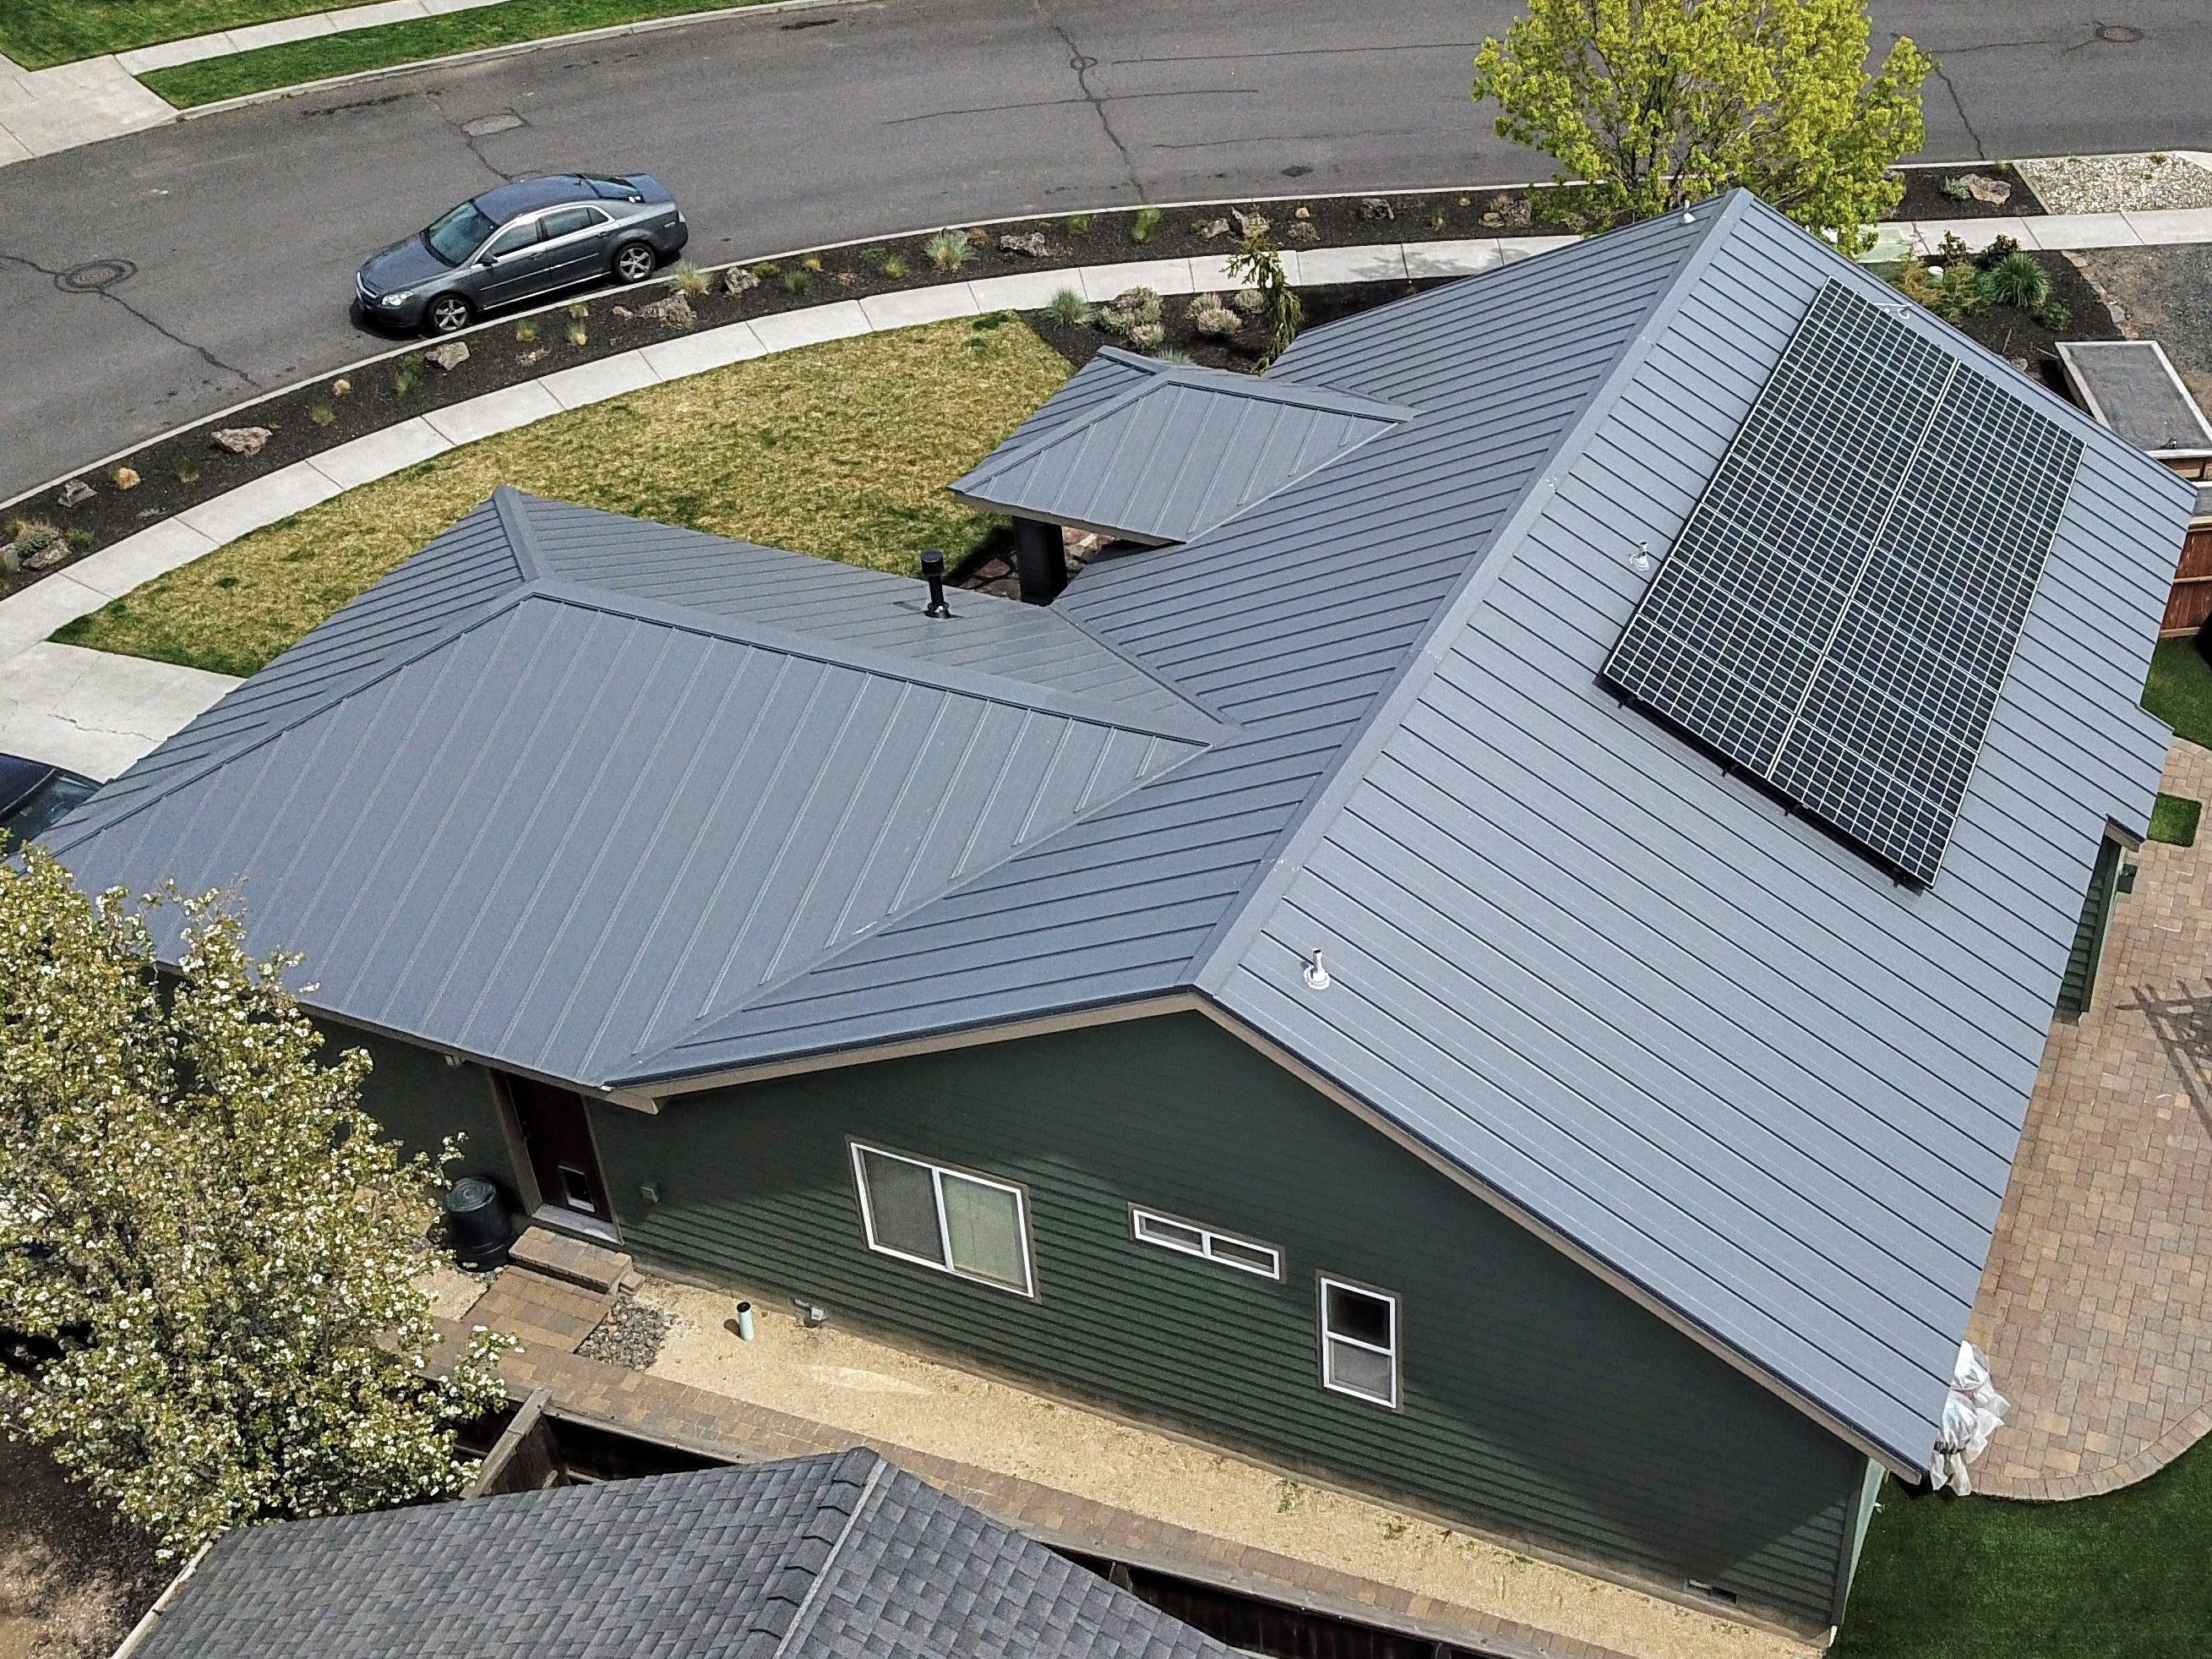 Pin By Deschutes Roofing On Www Deschutesroofing Com Roofing Contractors Roofing Commercial Roofing